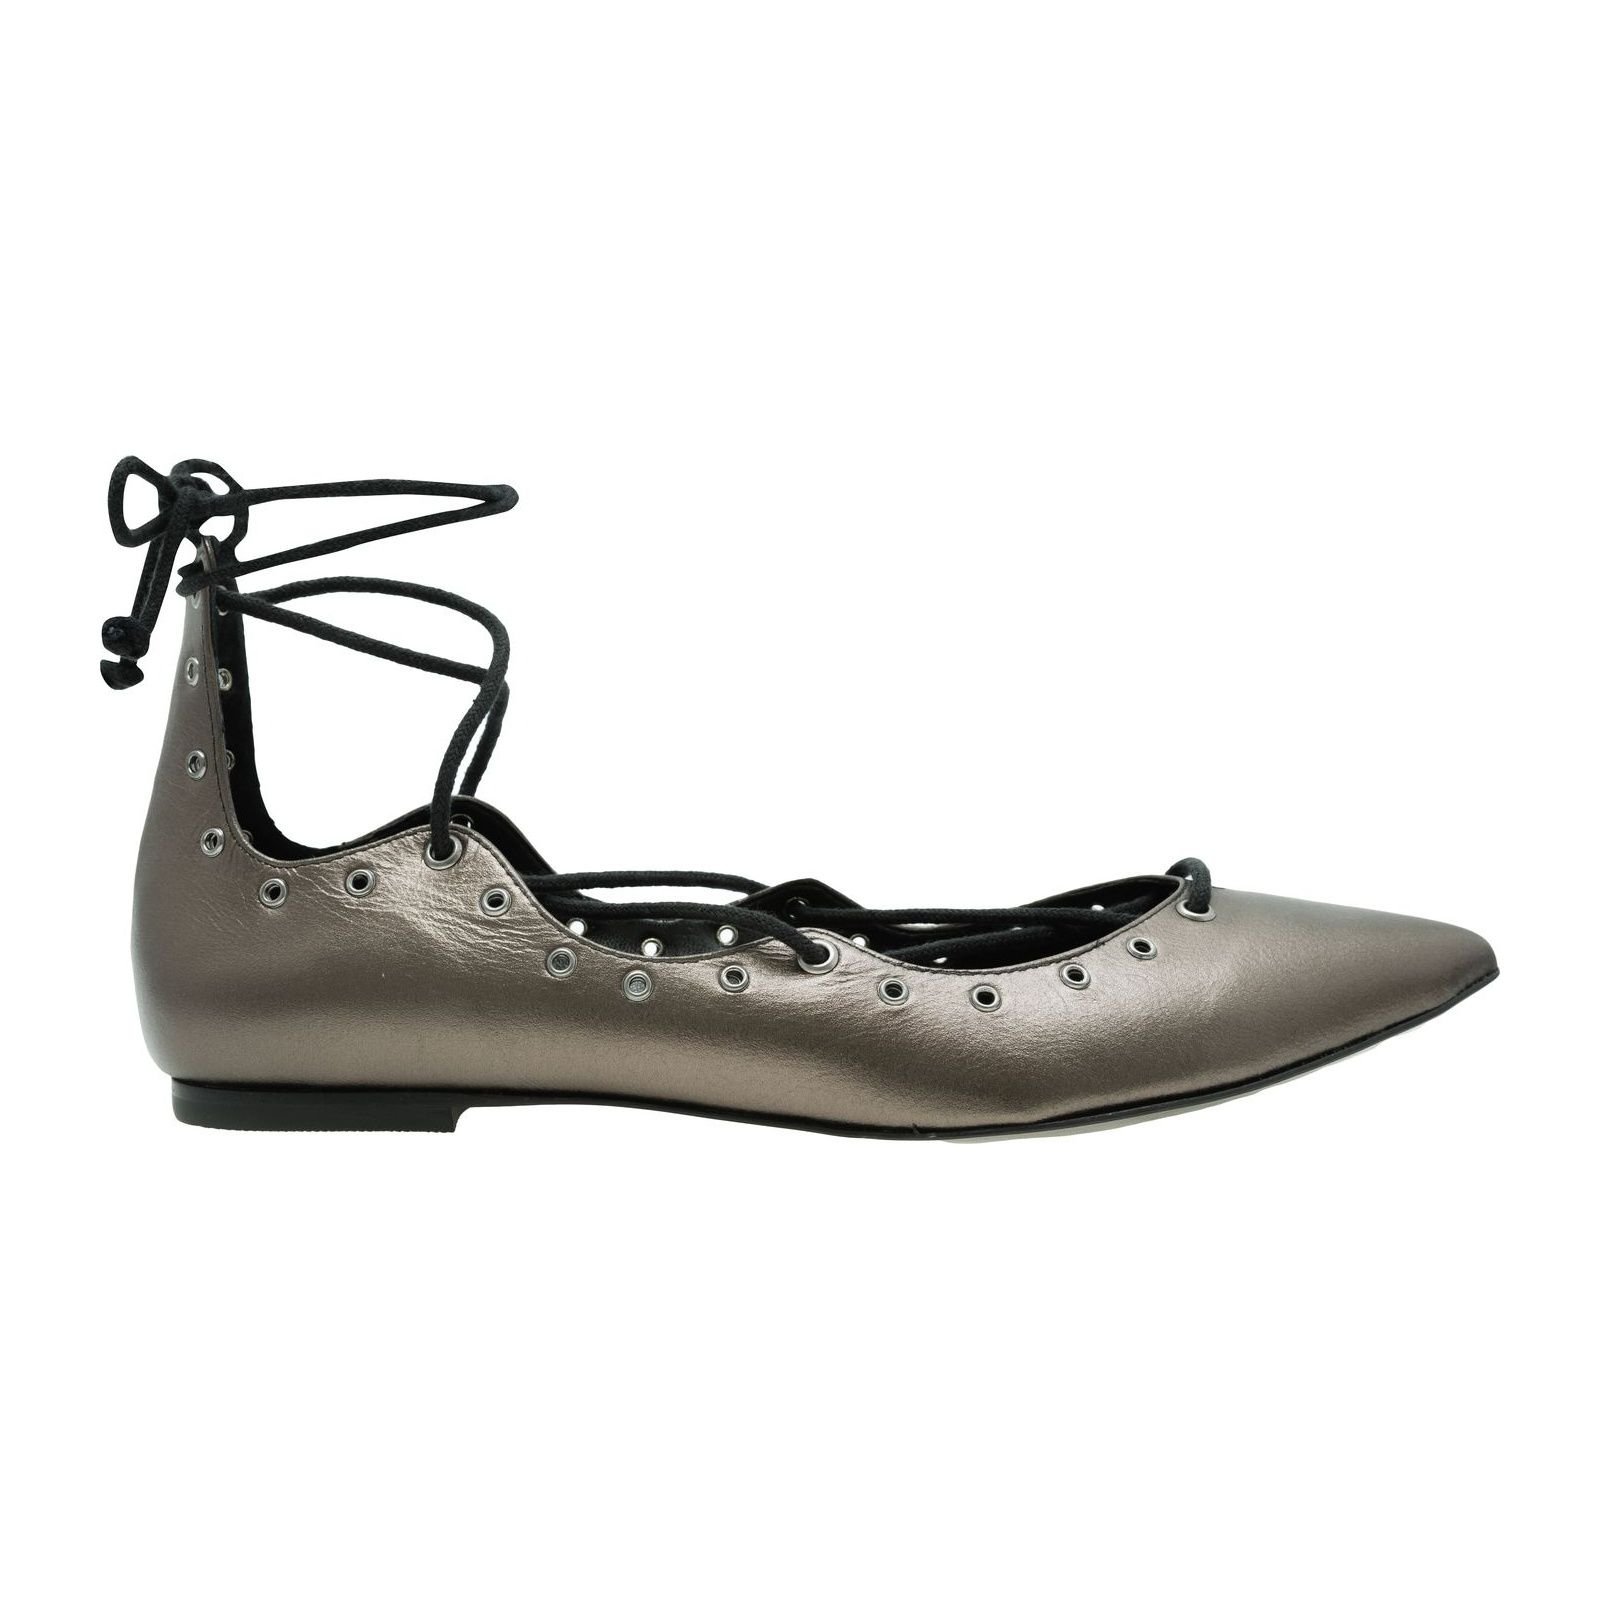 Sapatilha Lace Up Metálica - Cinza